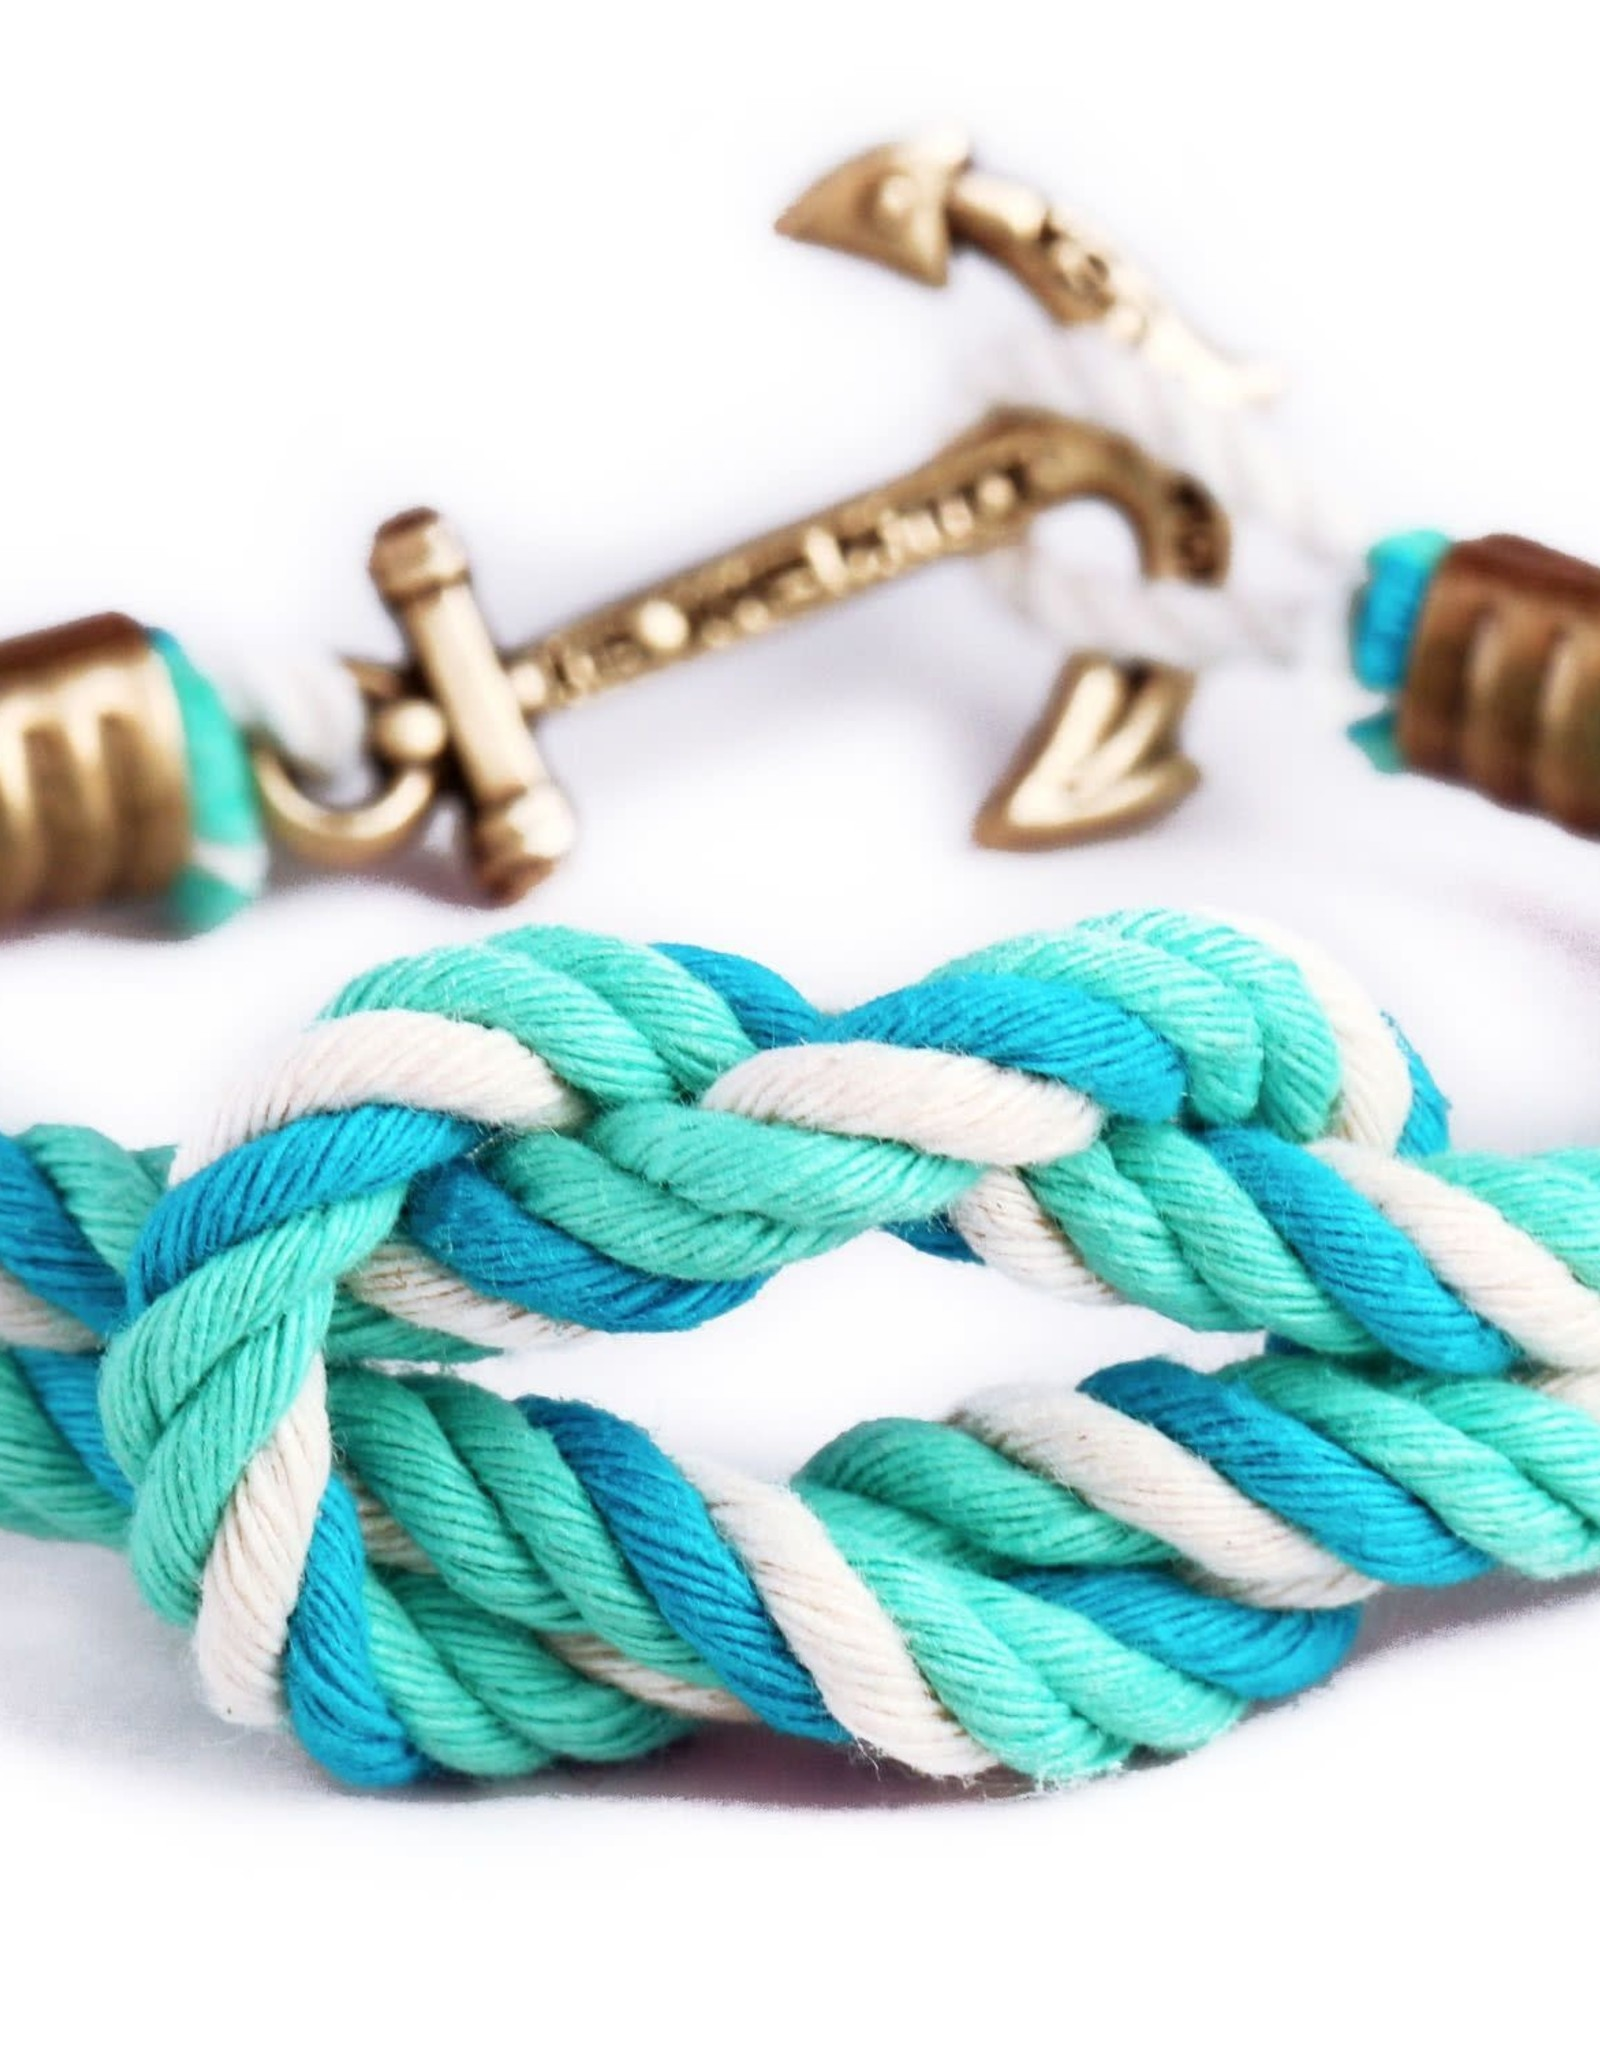 Kiel James Patrick Felicity's Wave Pool Bracelet